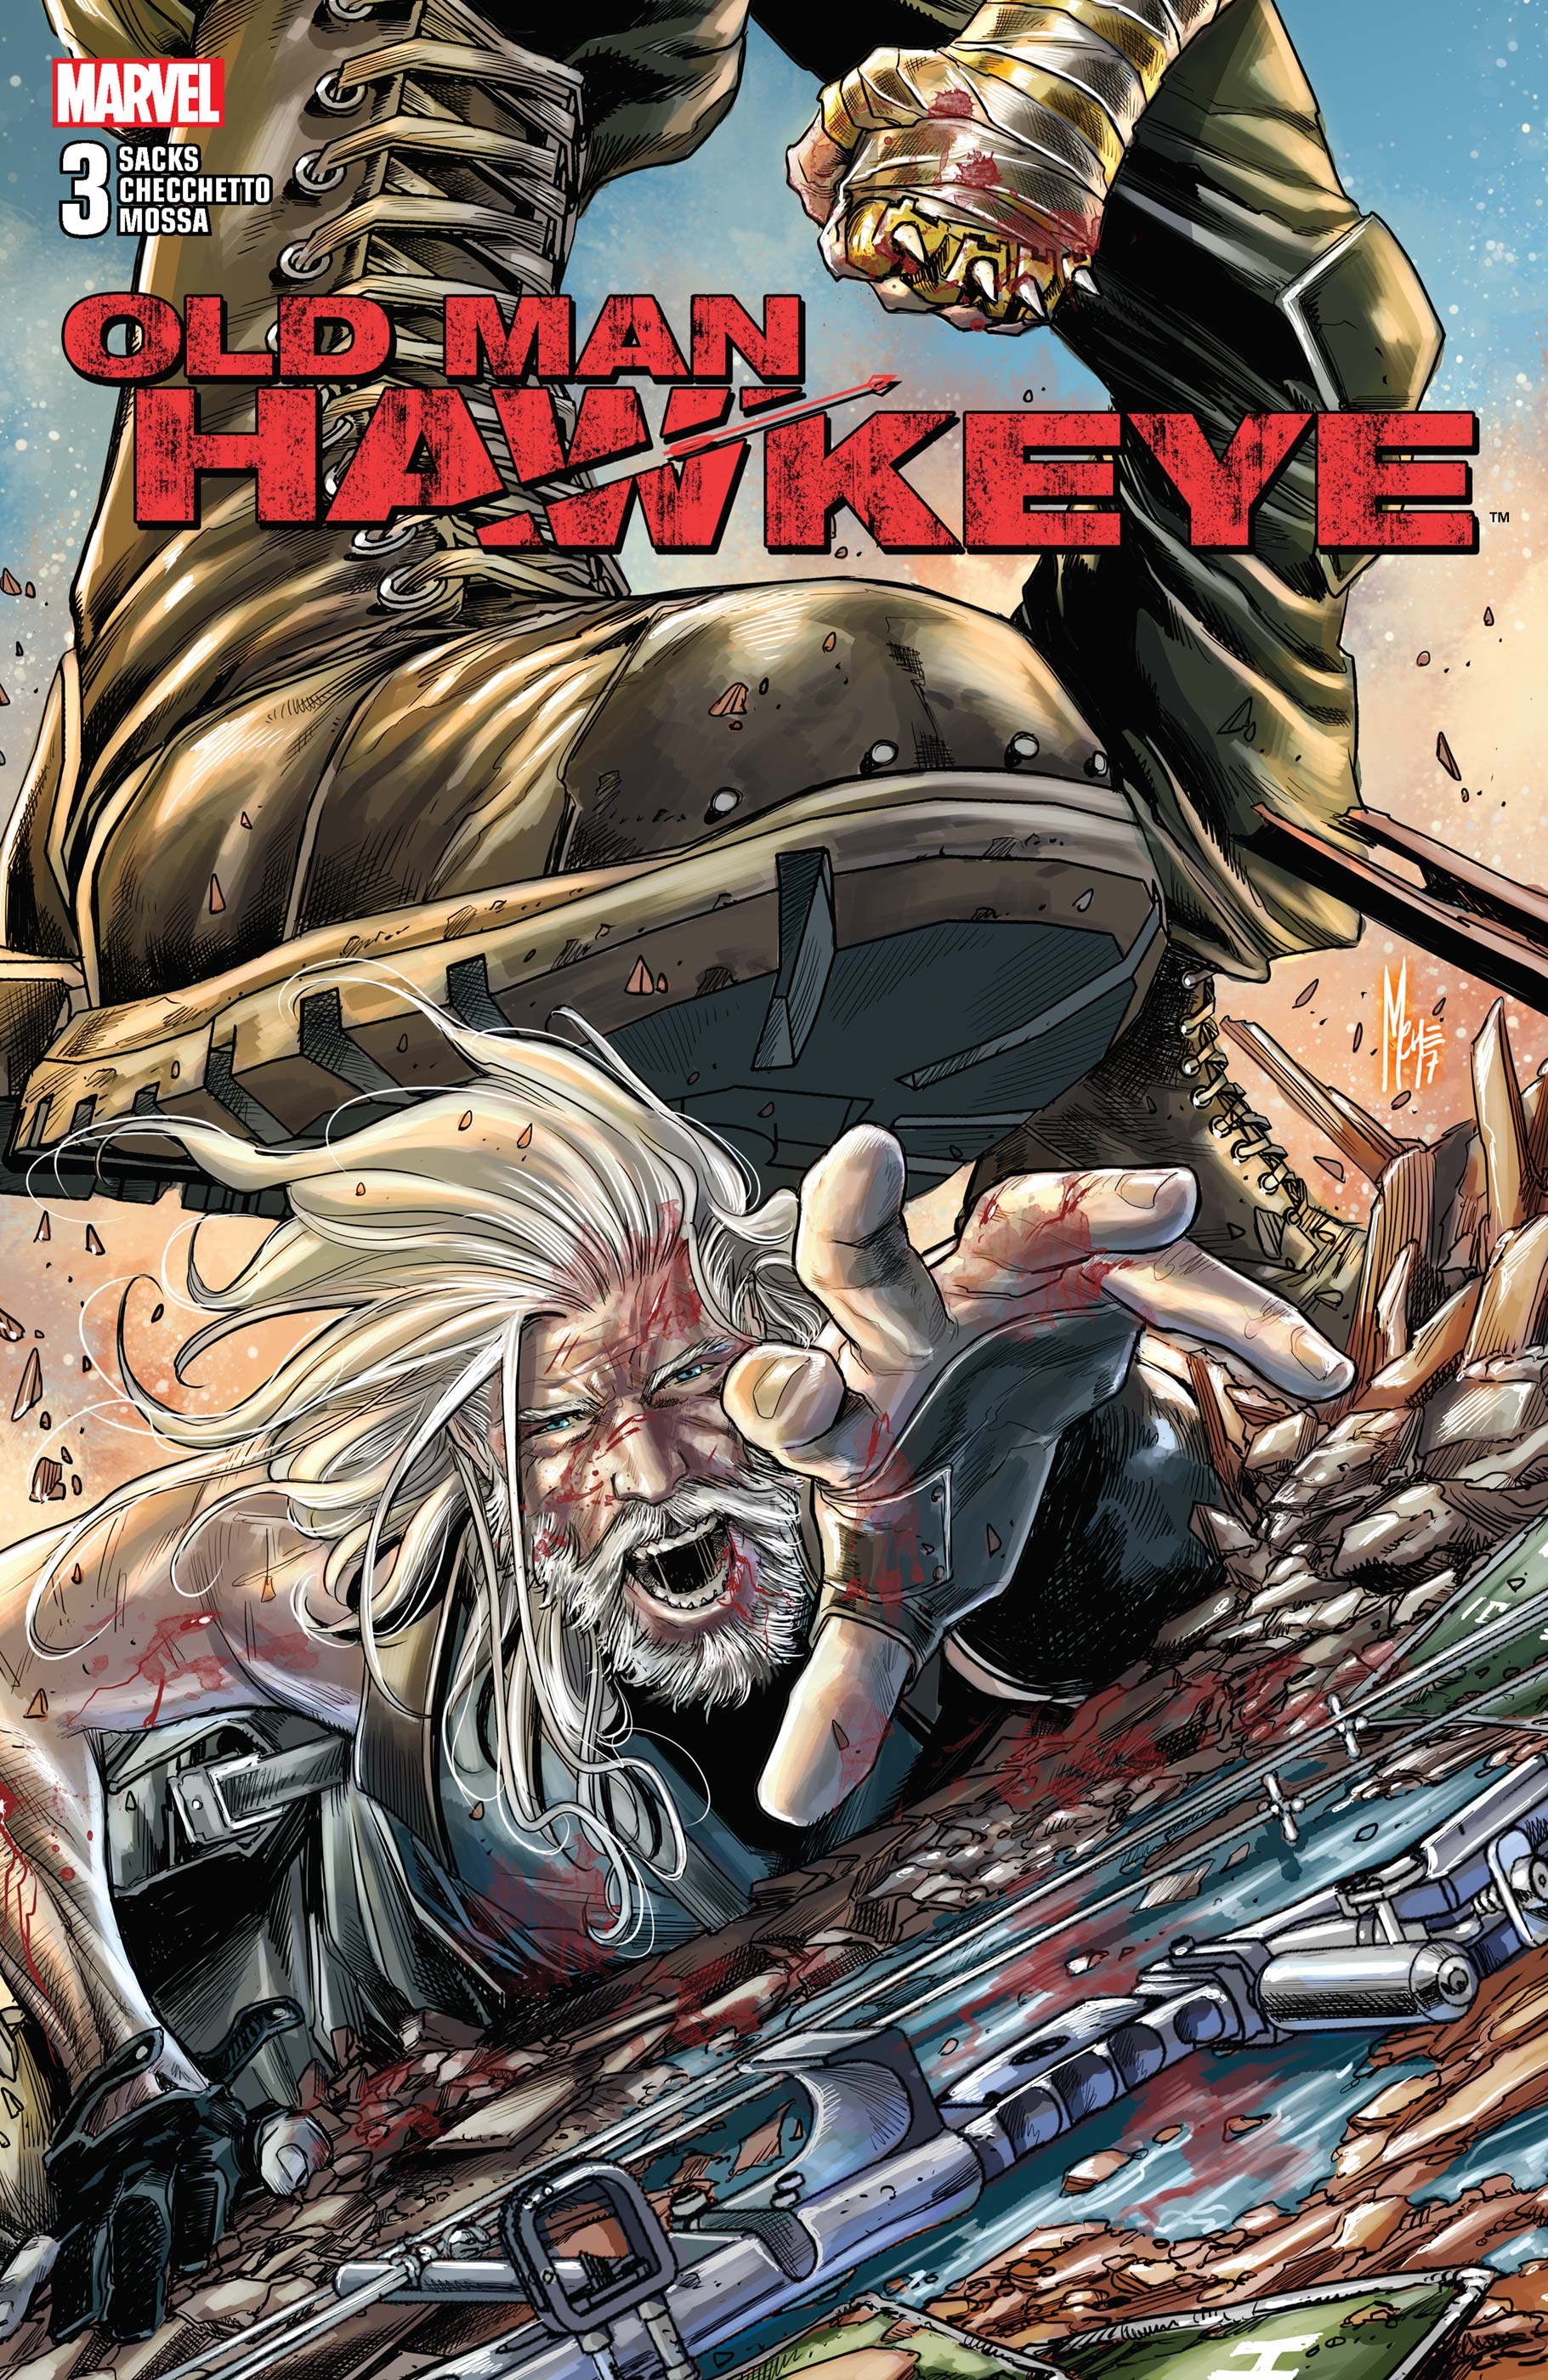 Old Man Hawkeye (2018) #3